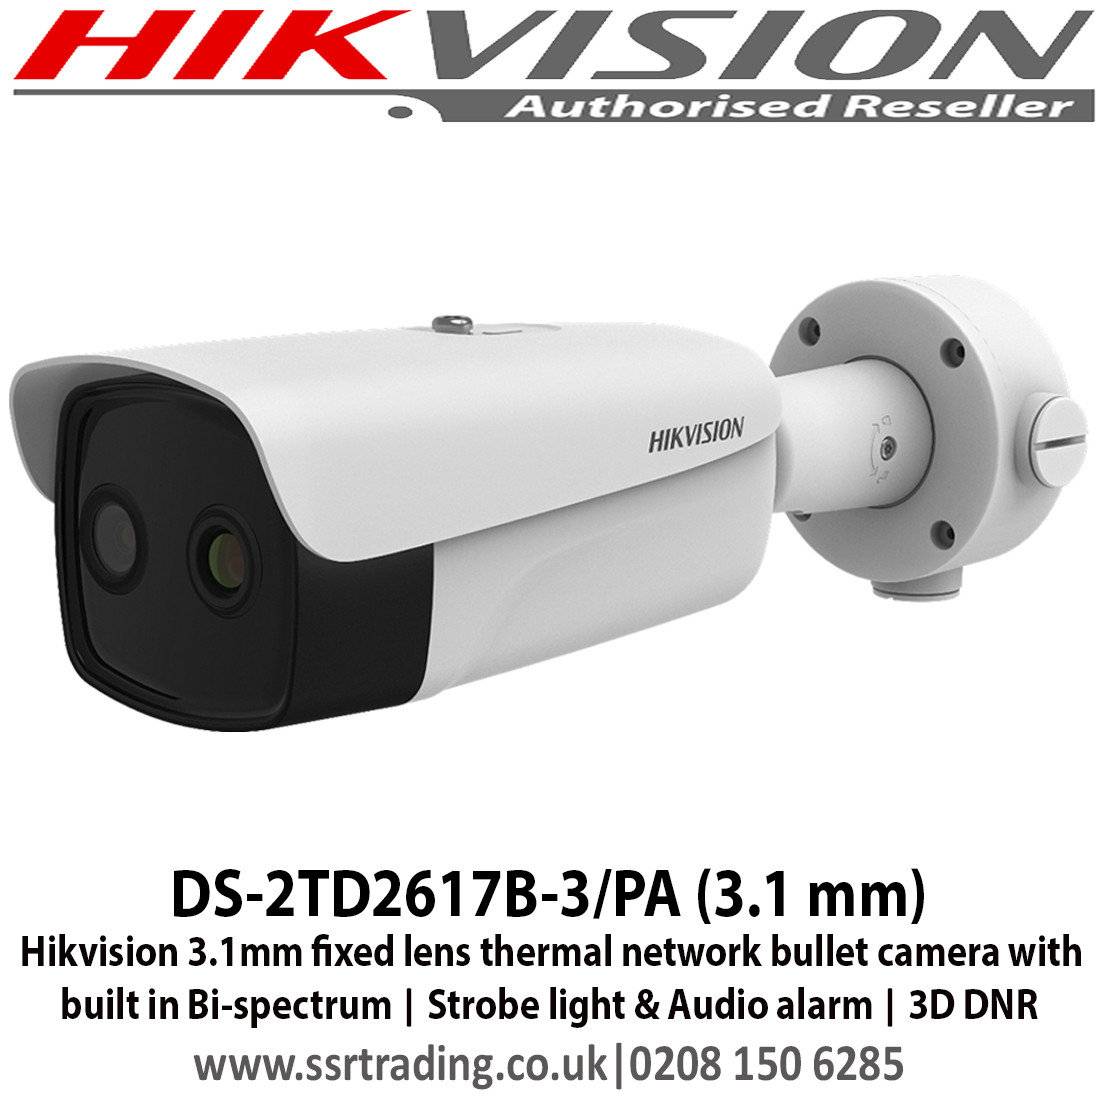 Hikvision - 3.1mm fixed lens thermal network bullet camera ...